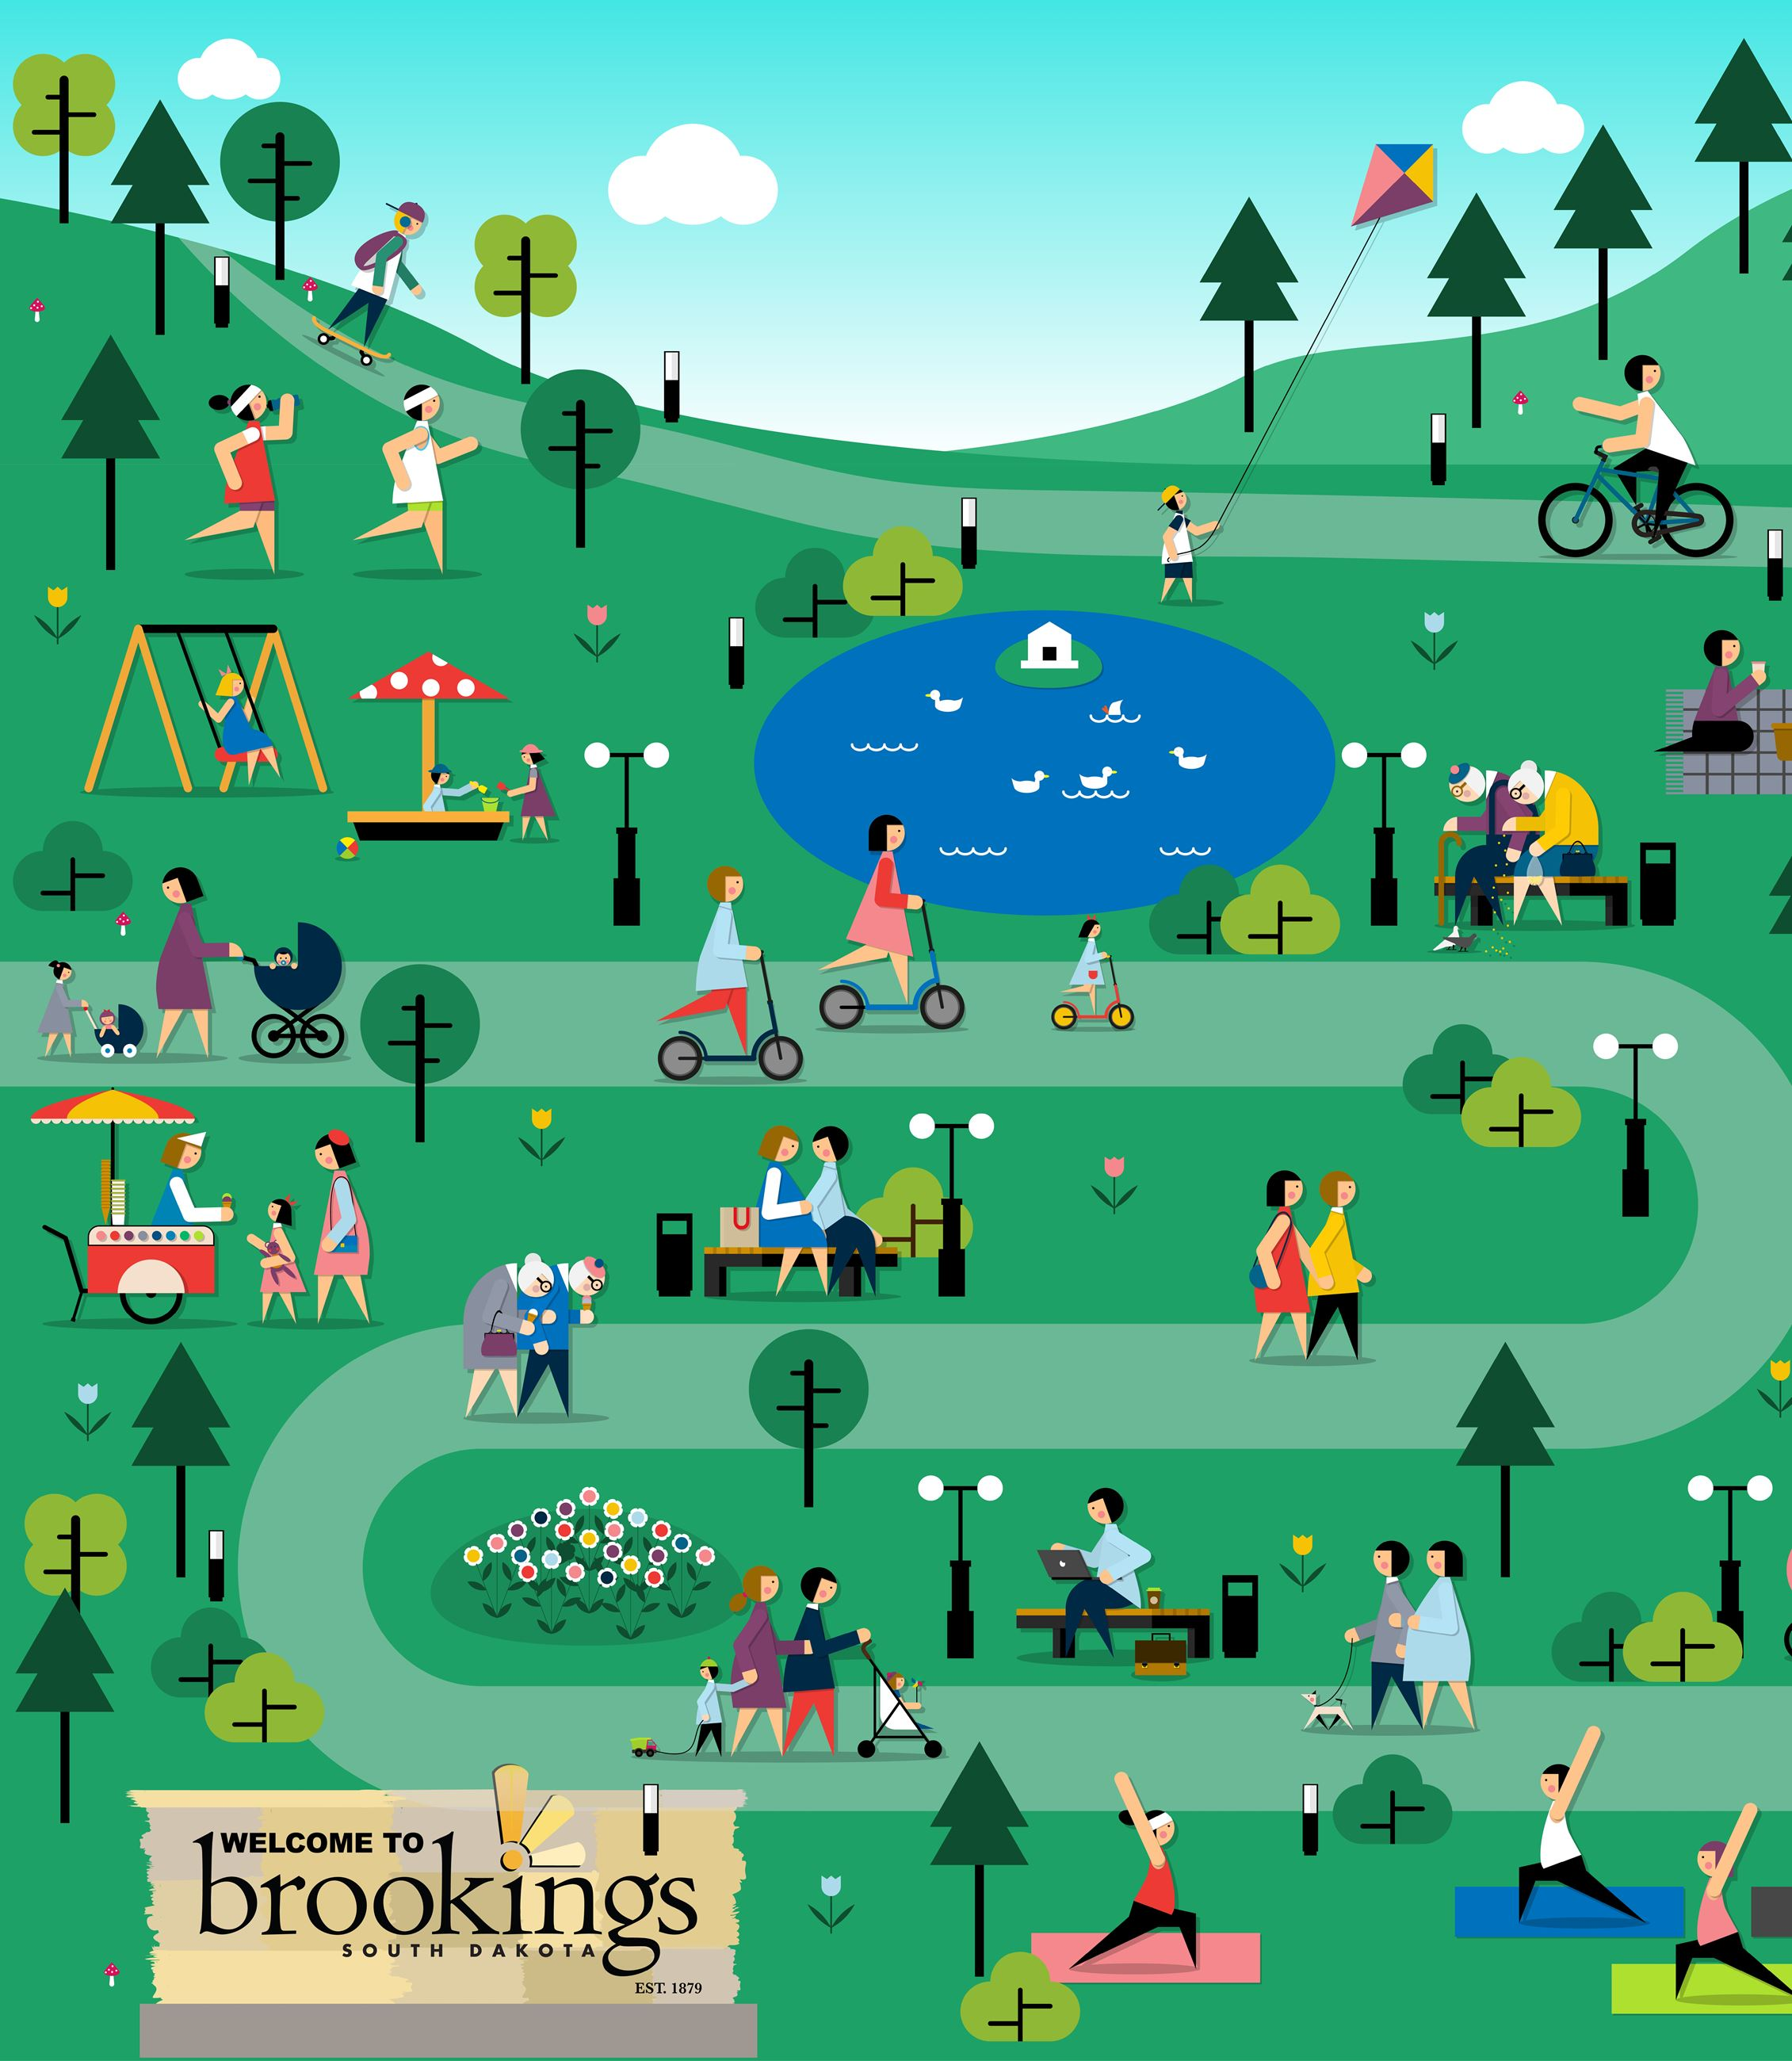 News Flash Graphics Template - Brookings Parks and Recreation